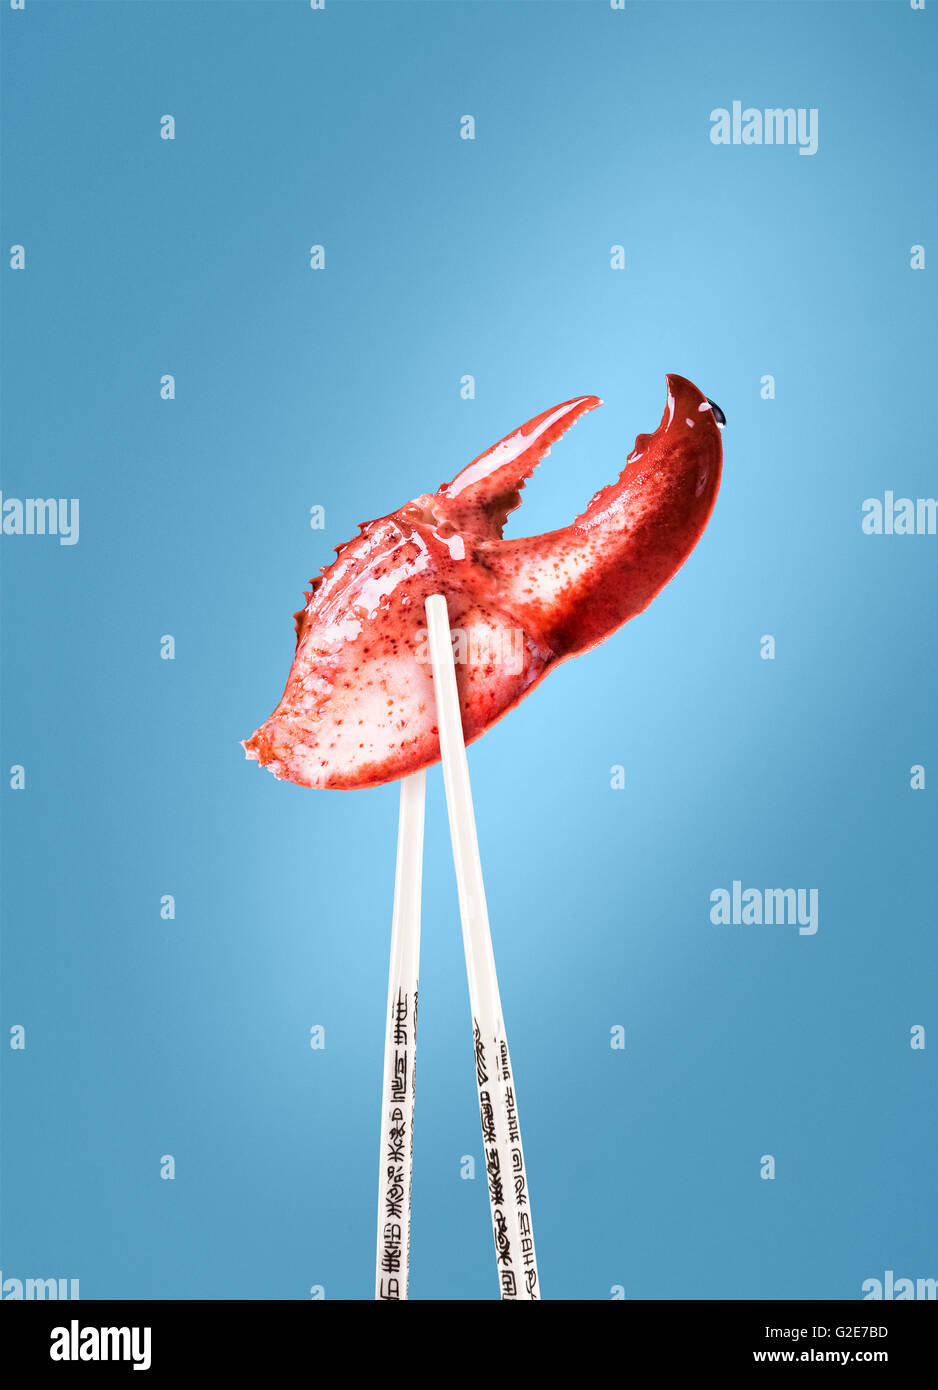 Lobster Claw Between Chopsticks - Stock Image